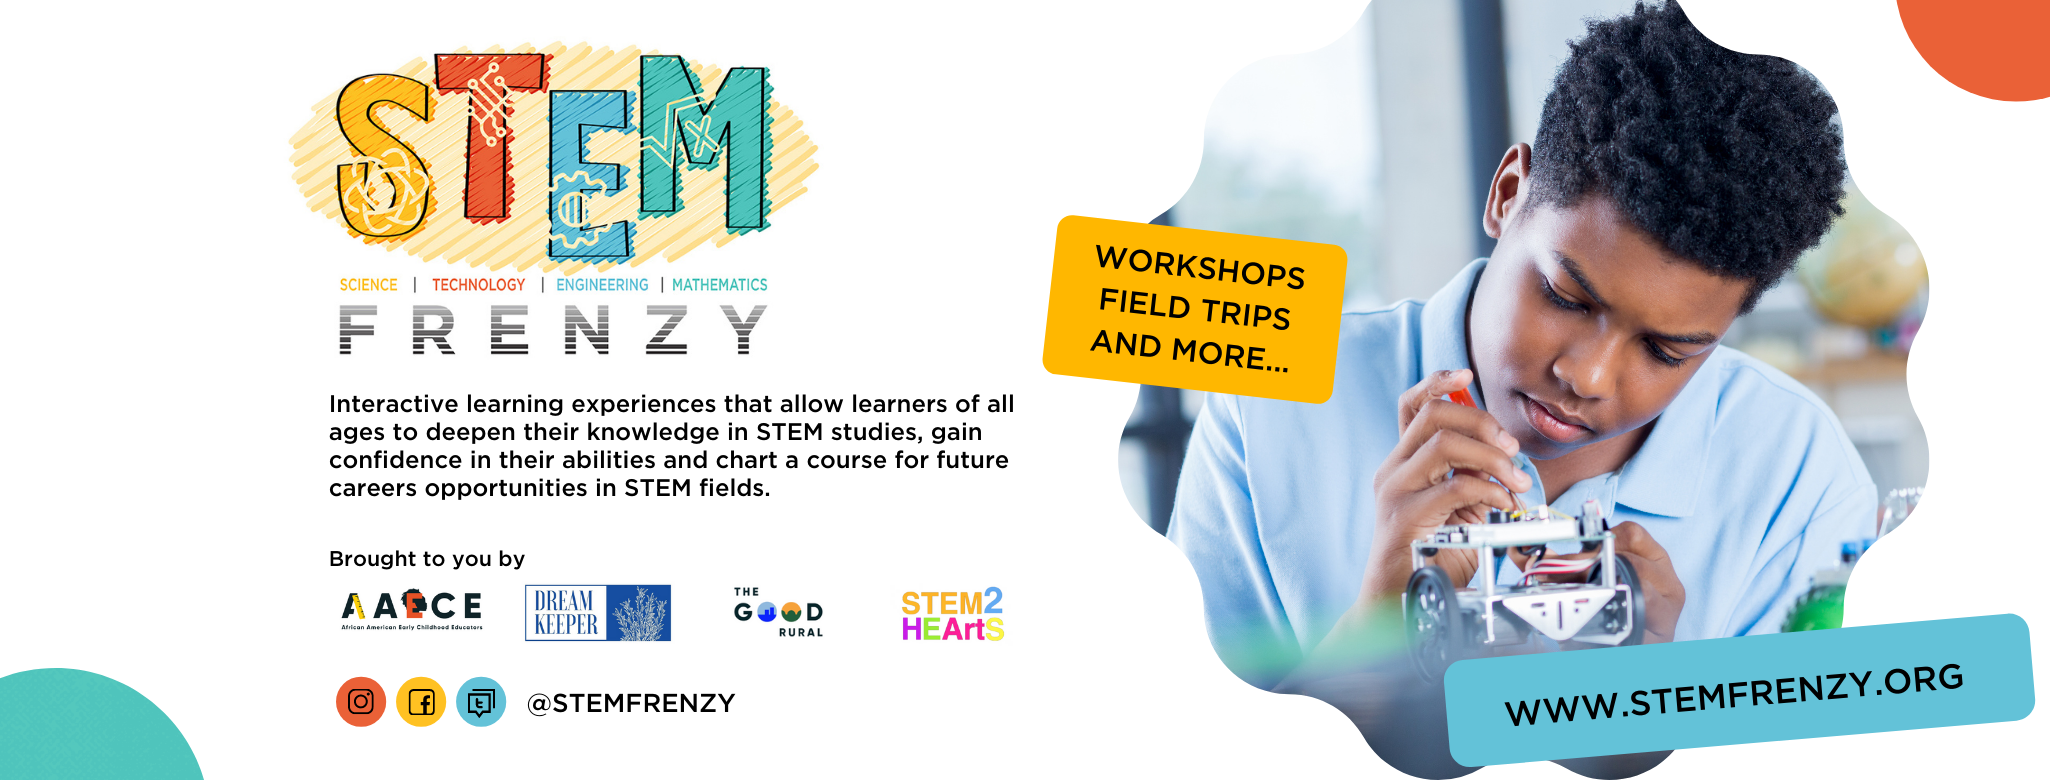 STEM Frenzy Festival: A Day of Hands-On Exploration, Meaningful Learning and Inspiring Discovery for the Whole Family